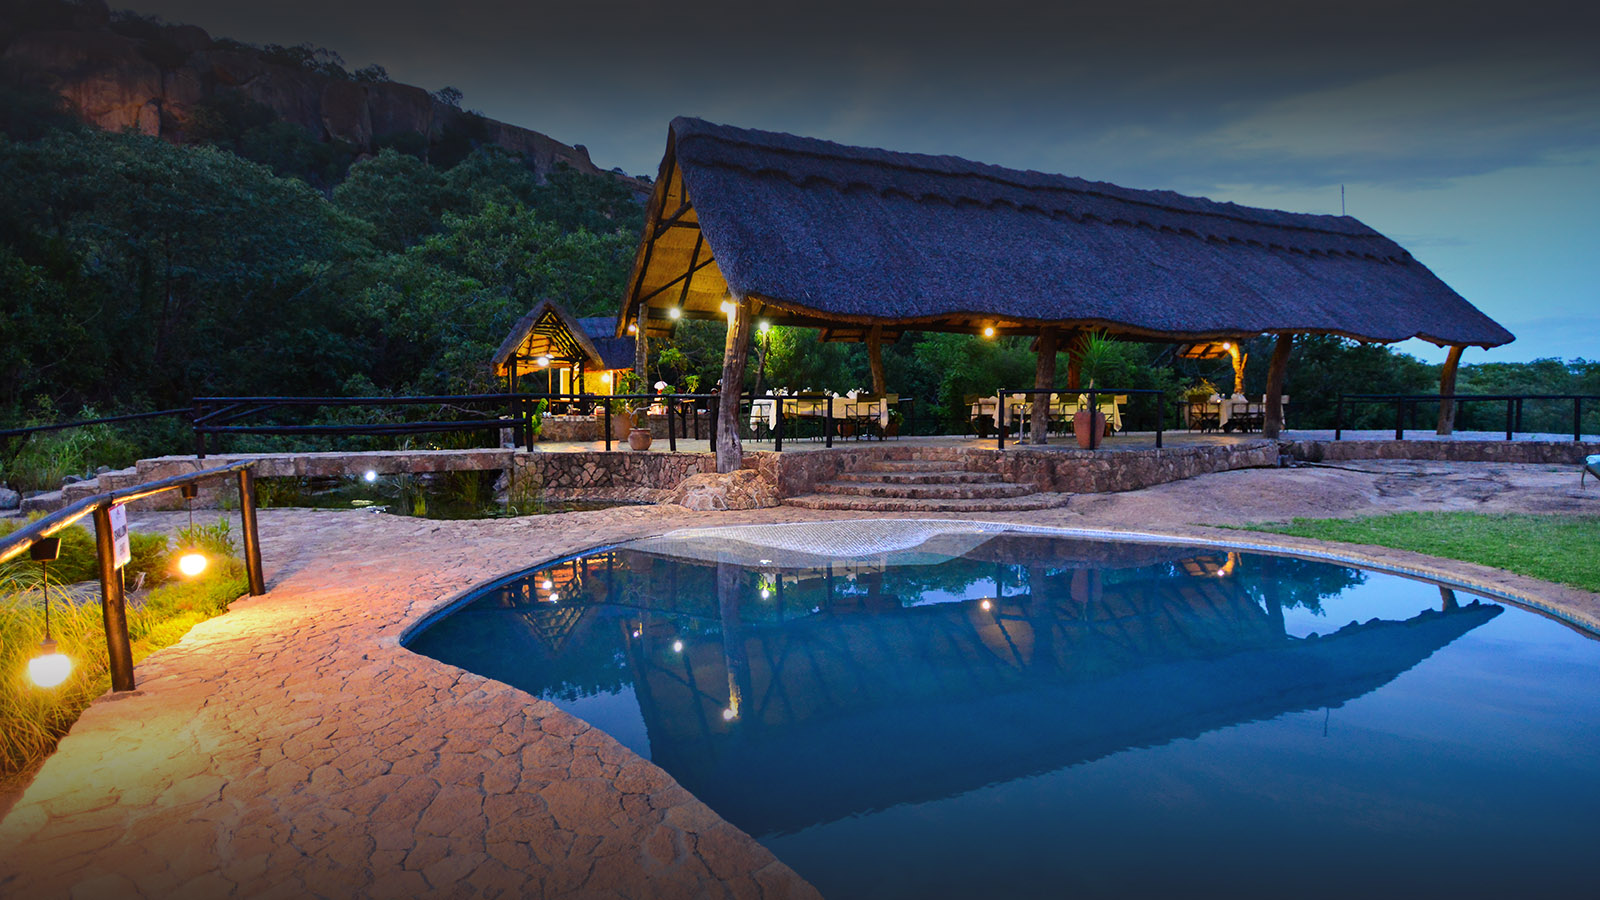 matobo hills lodge-zimbabwe-lodges-accommodation-matopos-matobo-national-park-pool-outdoors